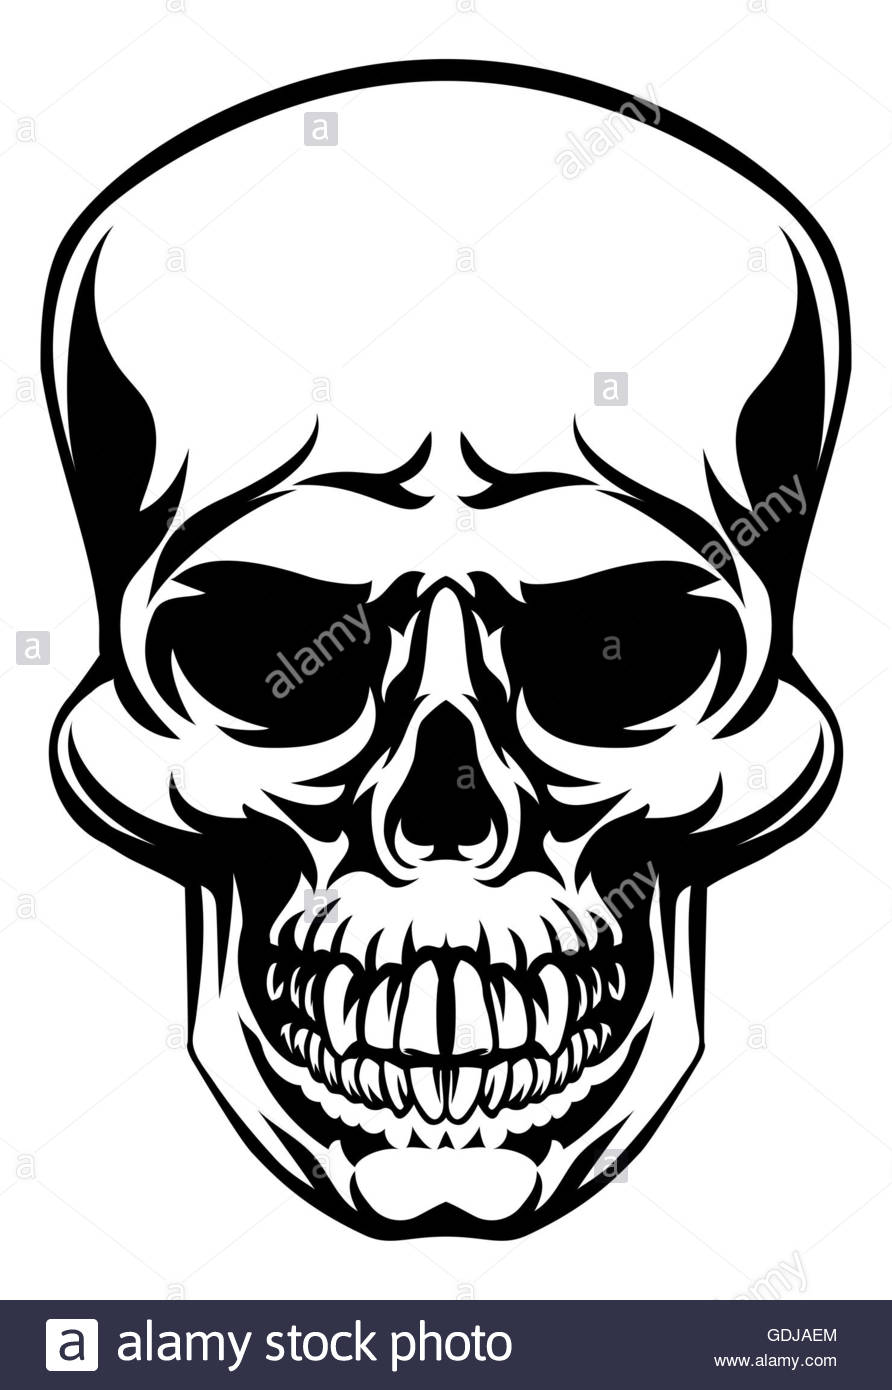 892x1390 A Skull Scary Skull Design Drawing Stock Photo 111656124